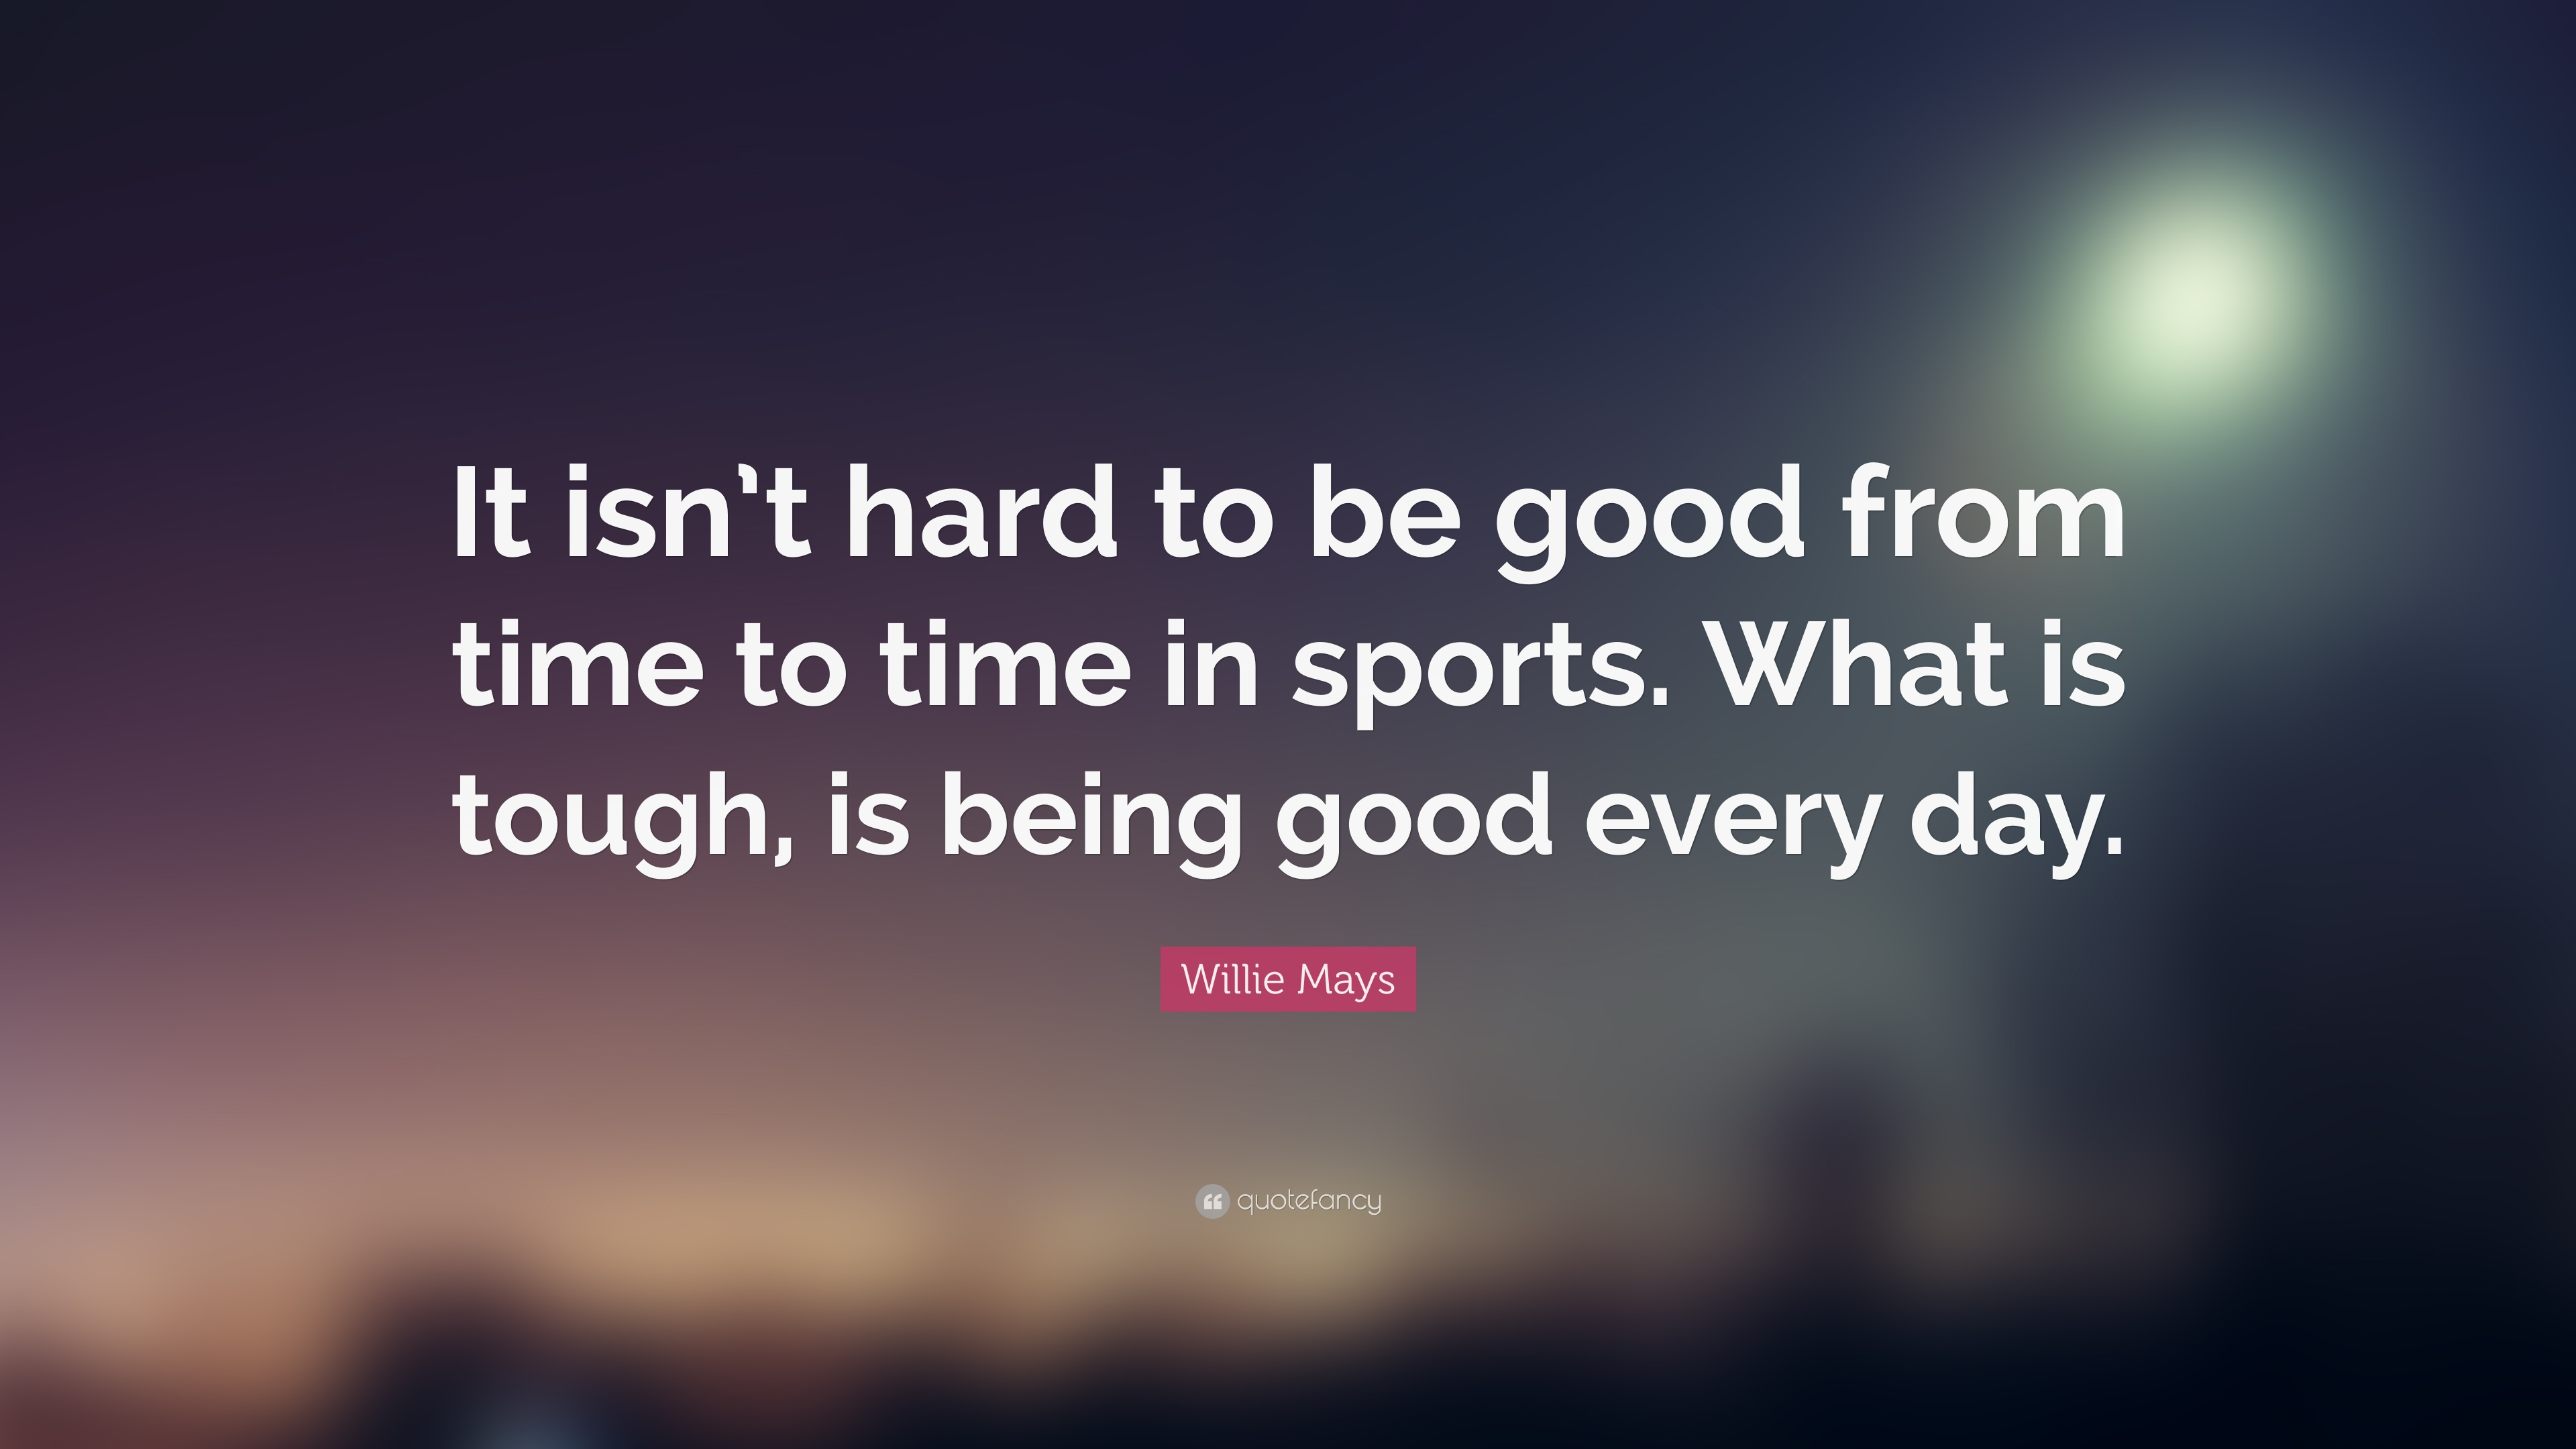 Quotes About Being Good | Willie Mays Quote It Isn T Hard To Be Good From Time To Time In